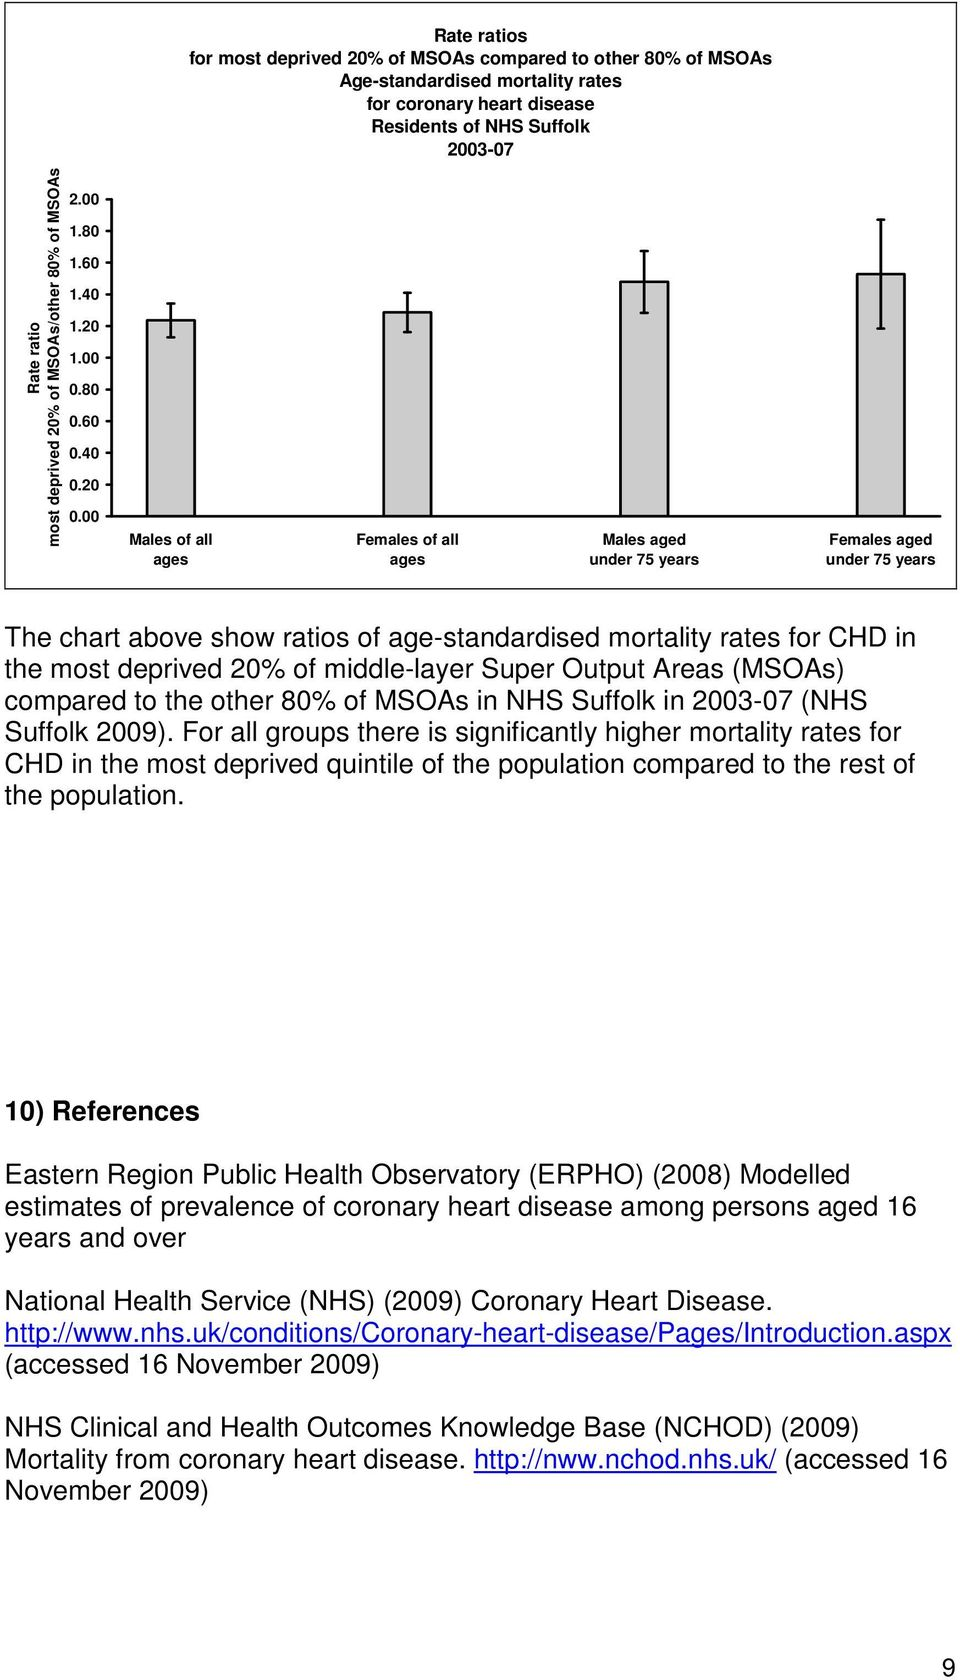 00 Males of all ages Females of all ages Males aged under 75 years Females aged under 75 years The chart above show ratios of age-standardised mortality rates for CHD in the most deprived 20% of